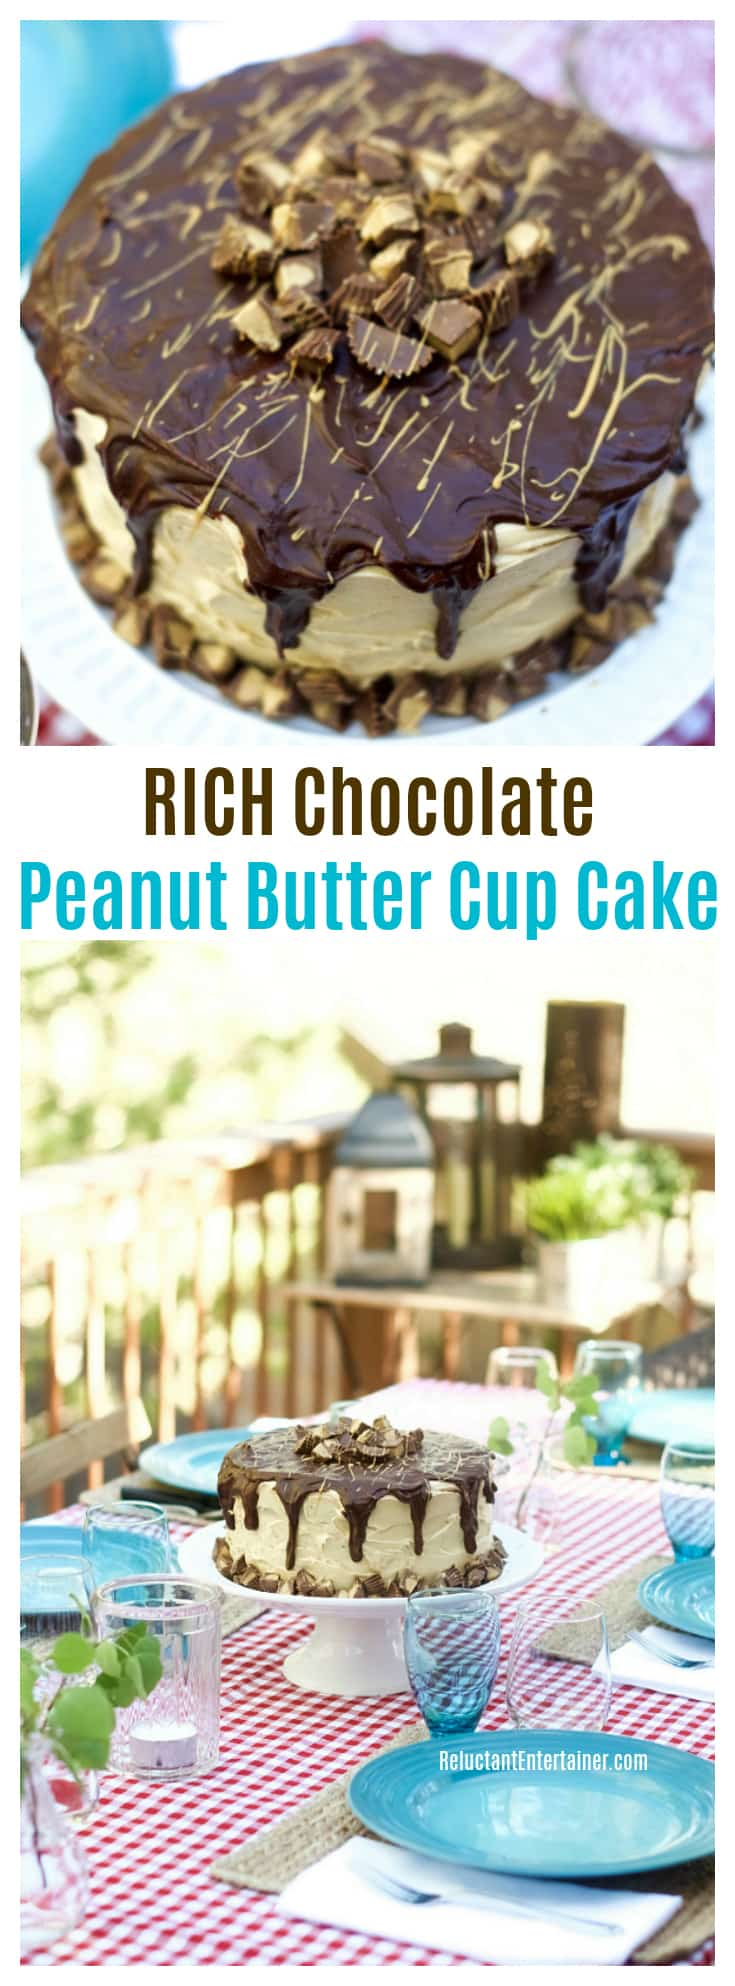 RICH Chocolate Peanut Butter Cup Cake Recipe